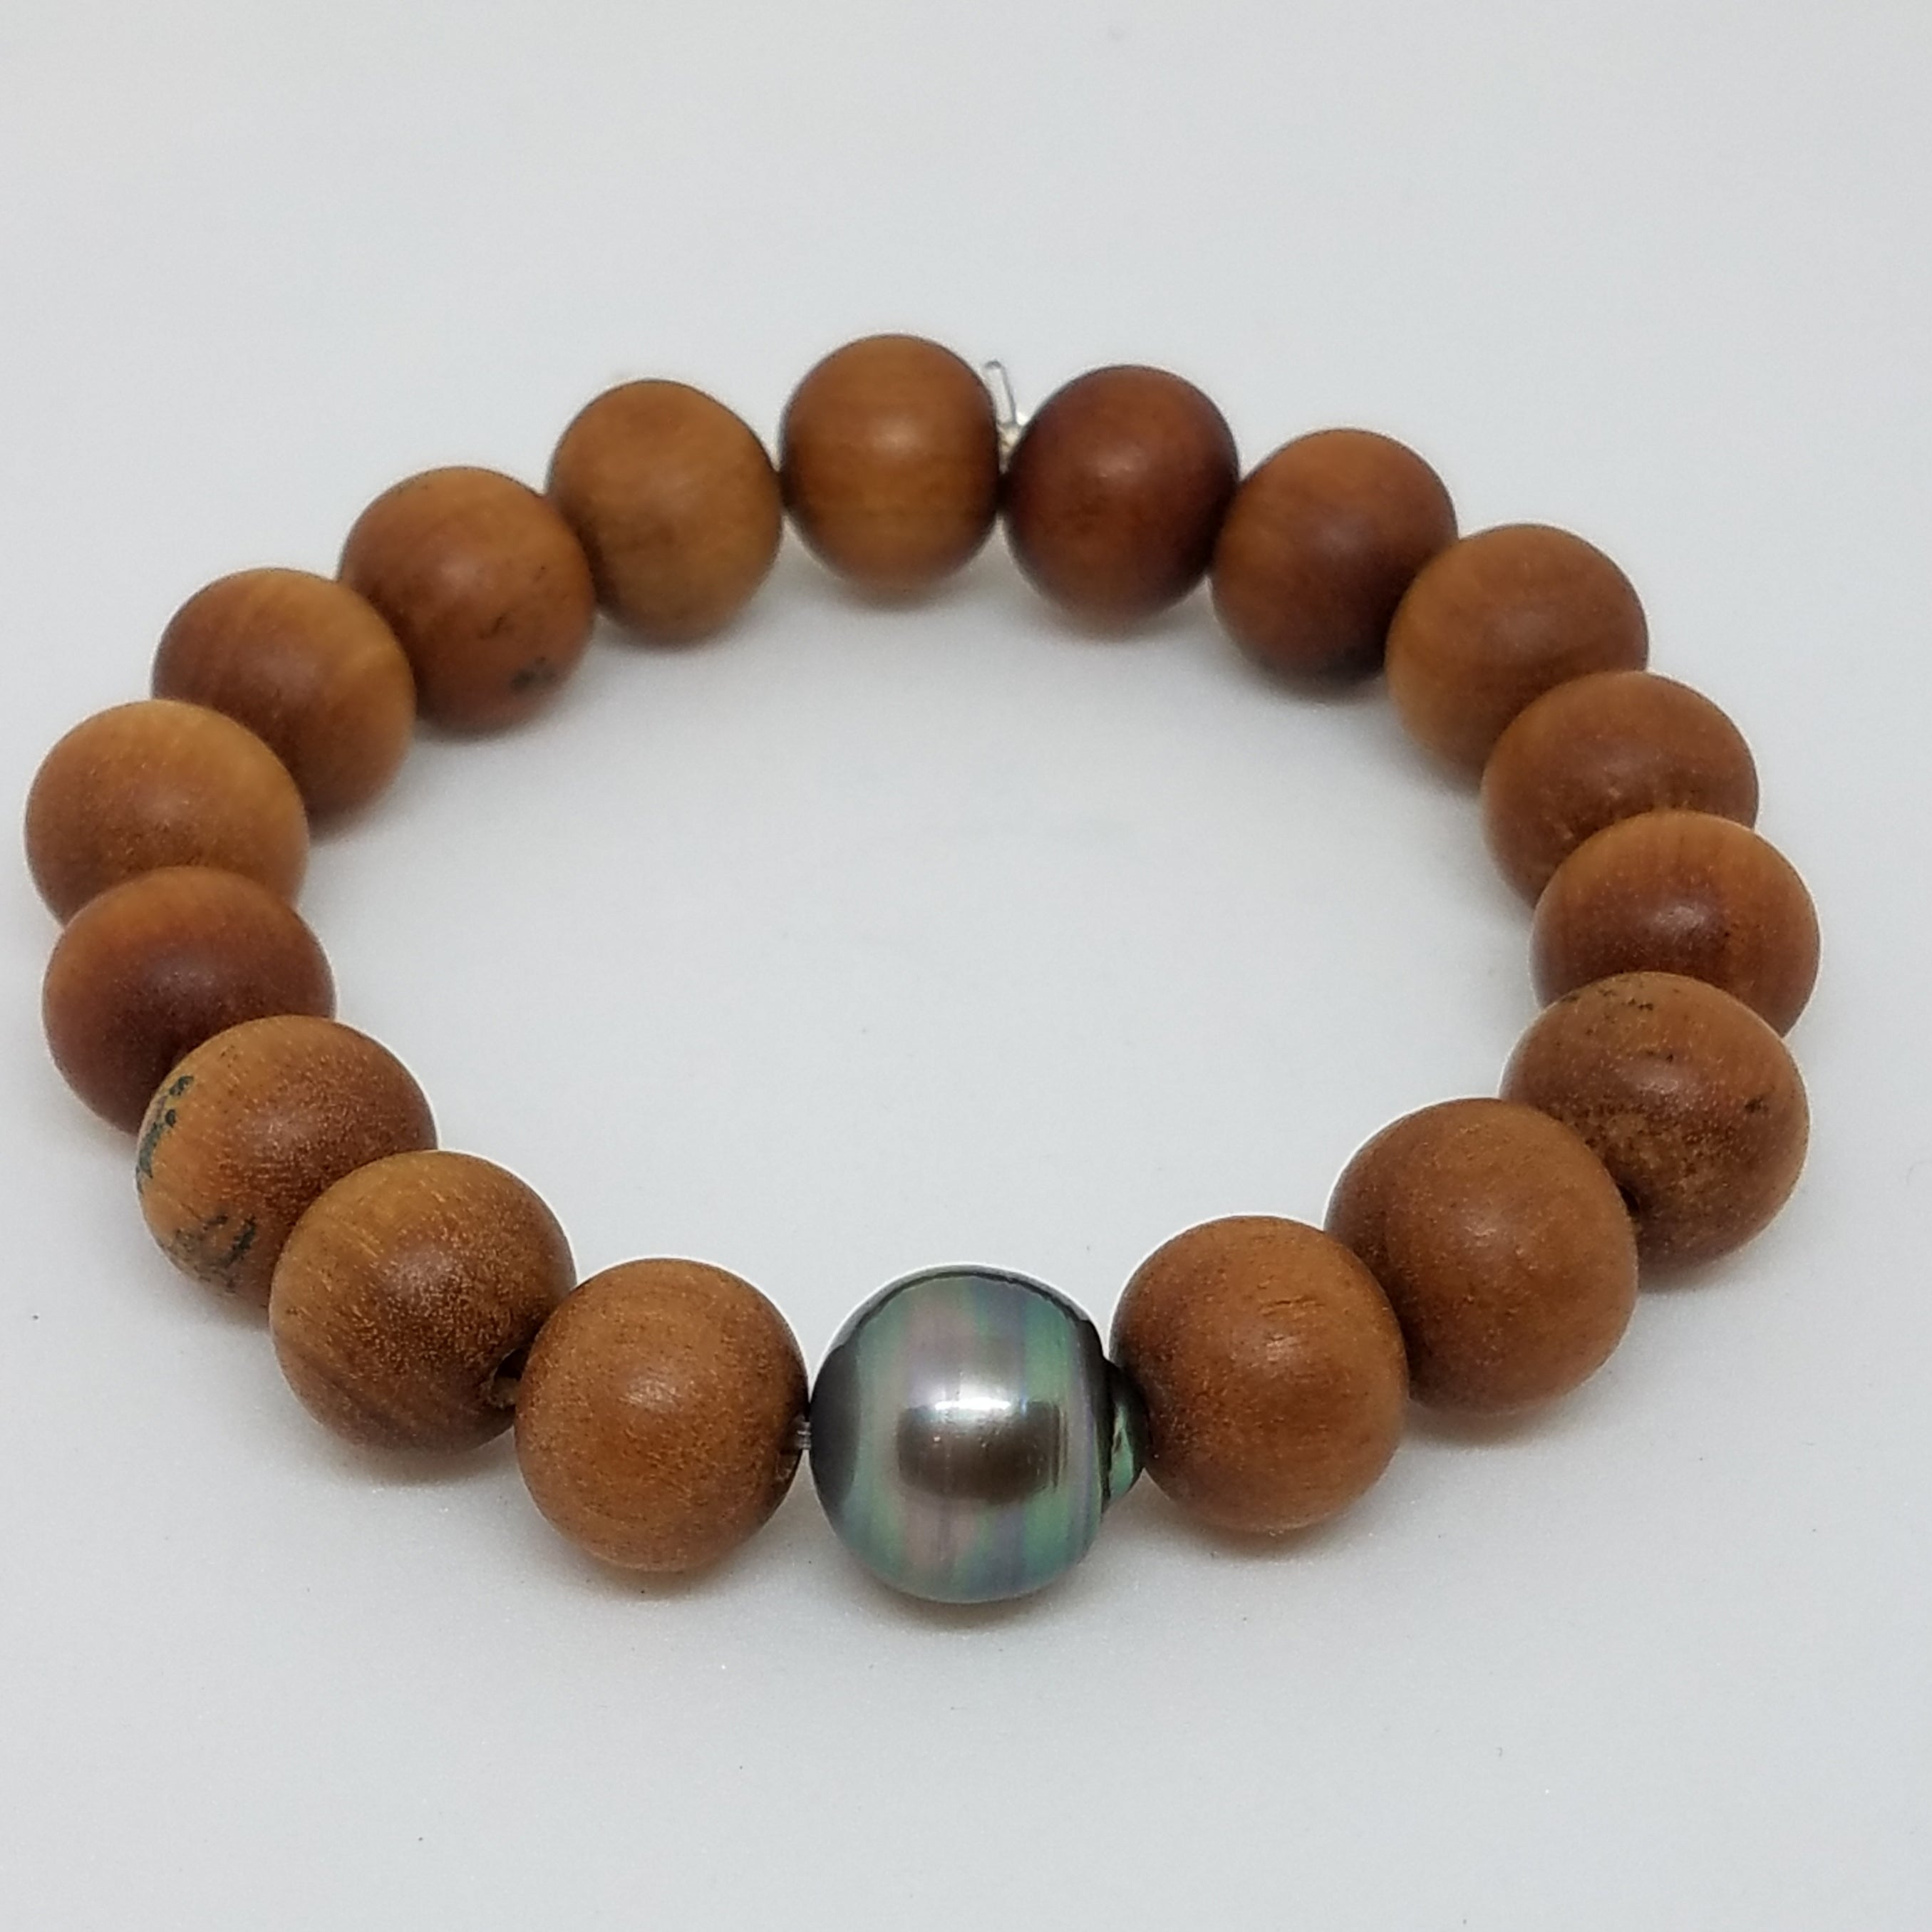 Single Tahitian Pearl on Sandalwood Bracelet